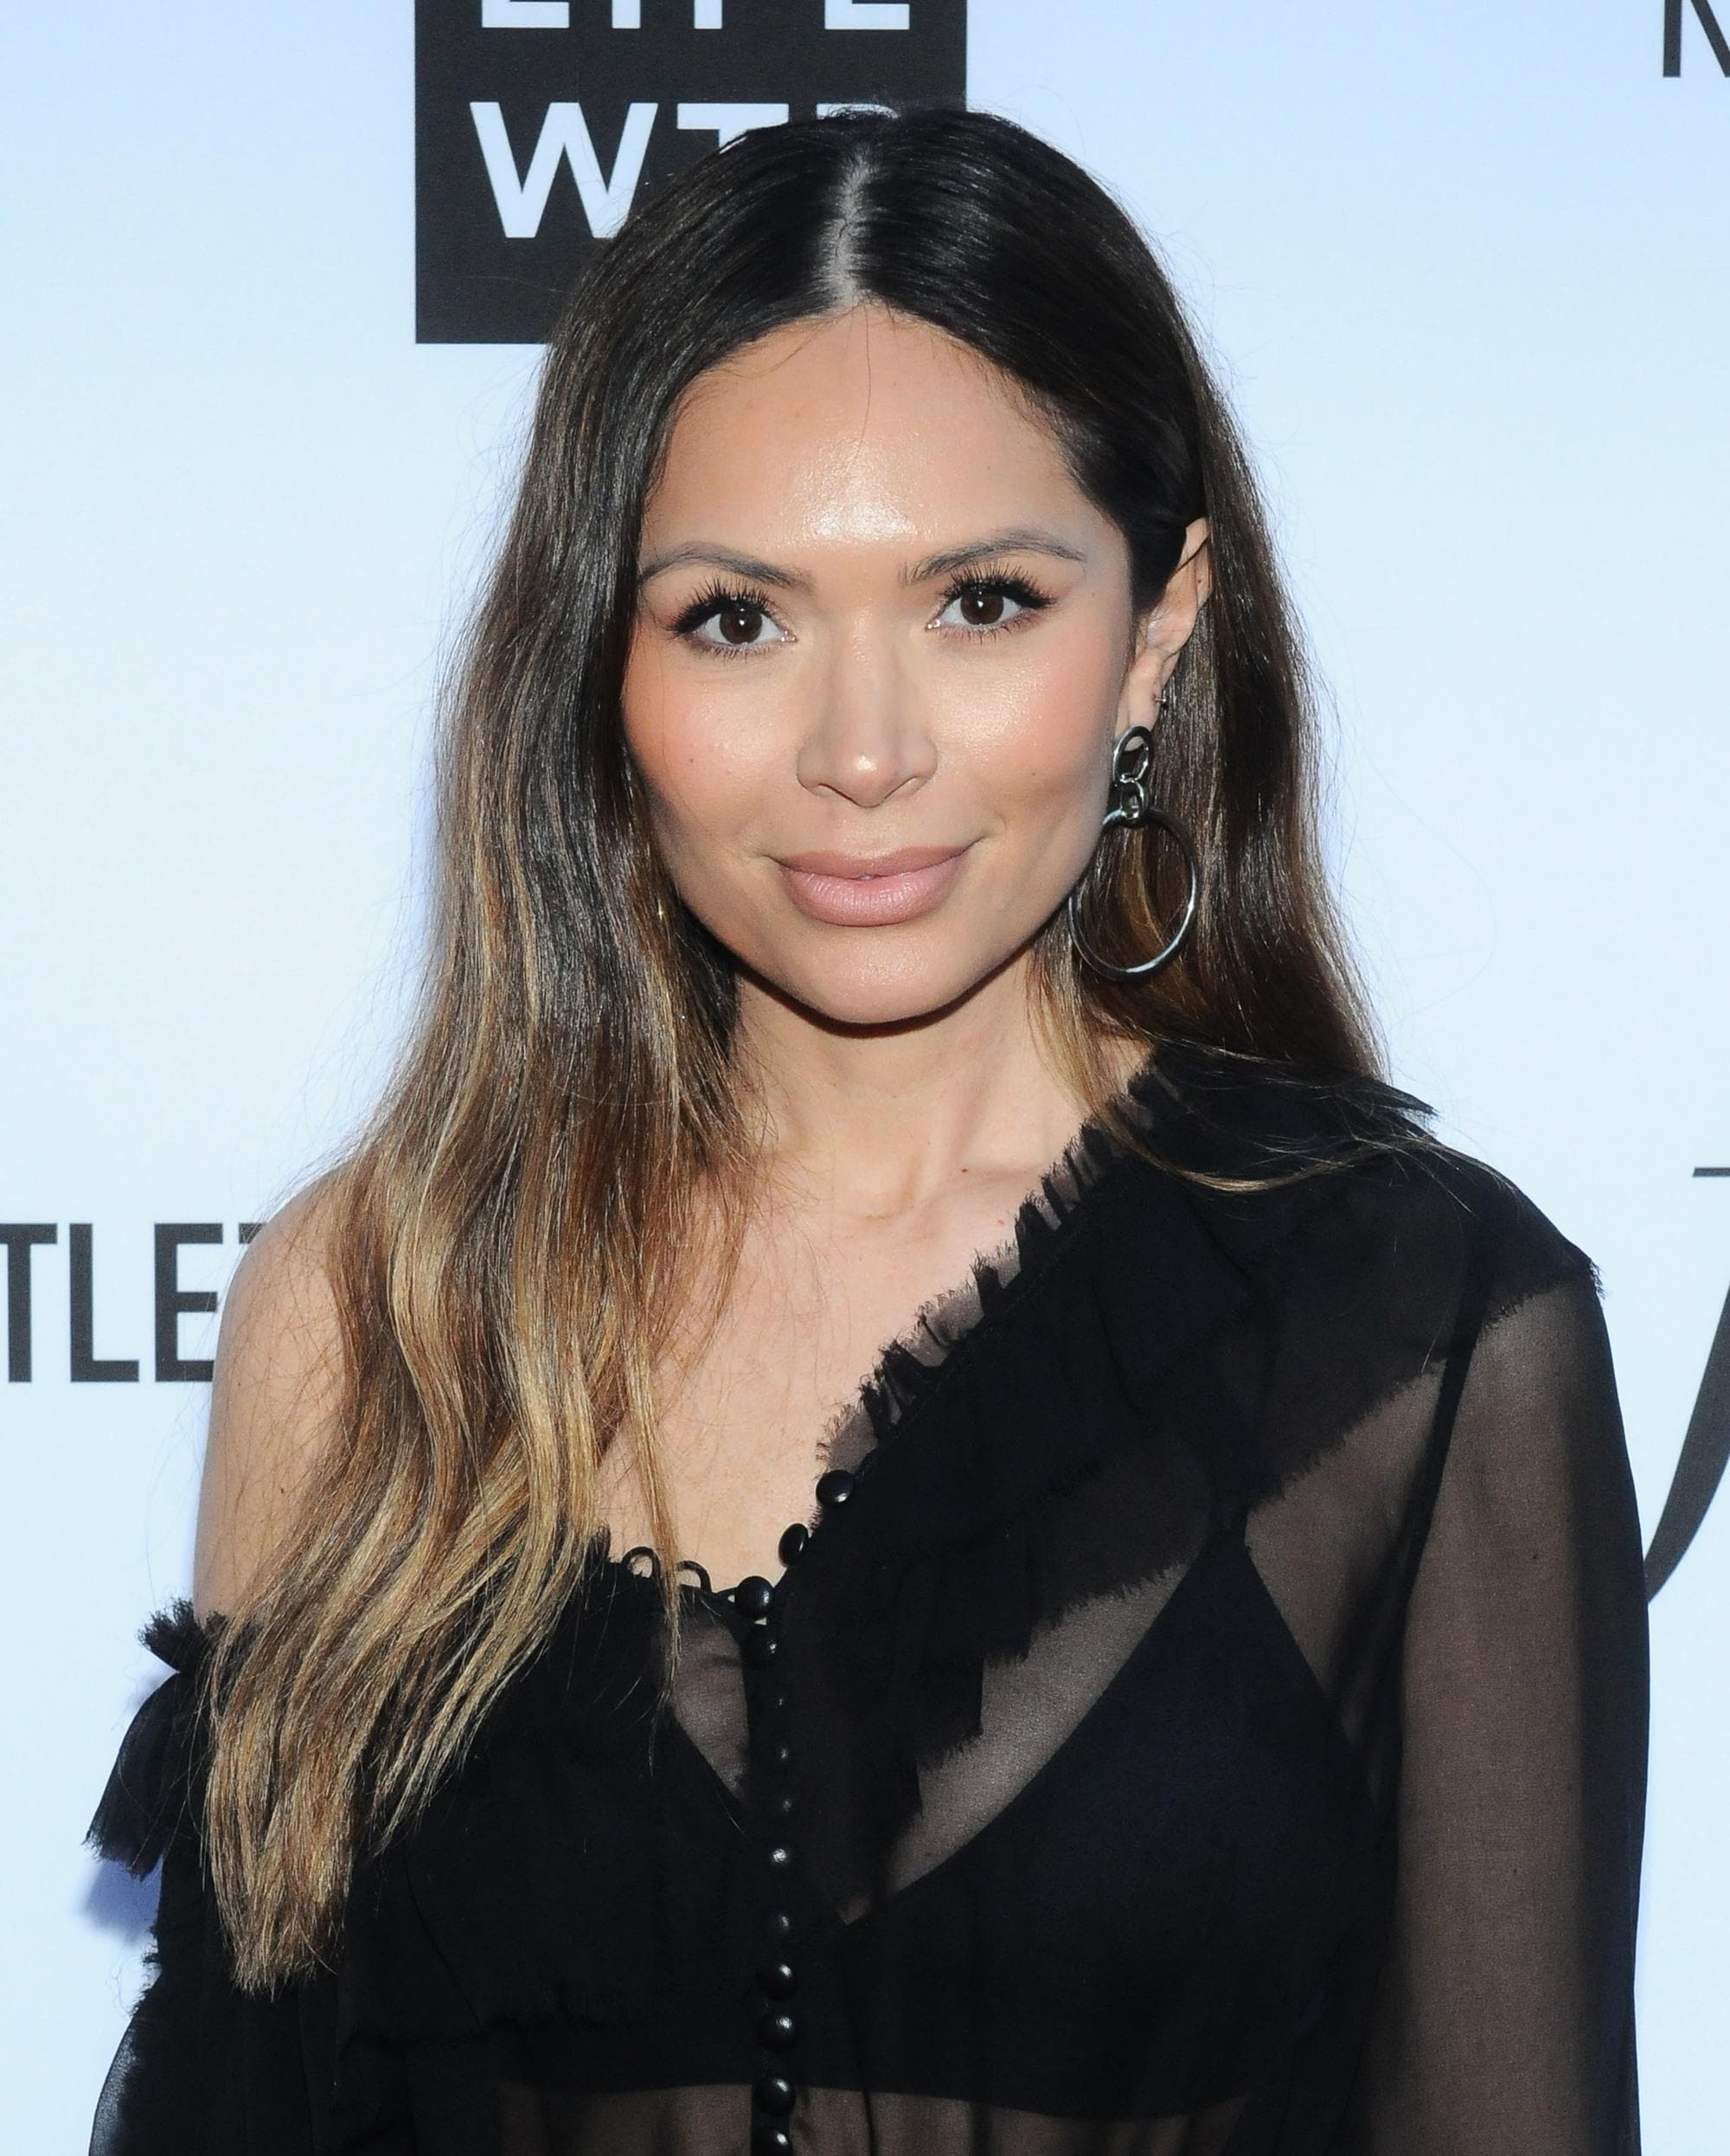 Brown hair with blonde highlights: Marianna Hewitt with long wavy brown hair with blonde highlights, wearing a sheer black top